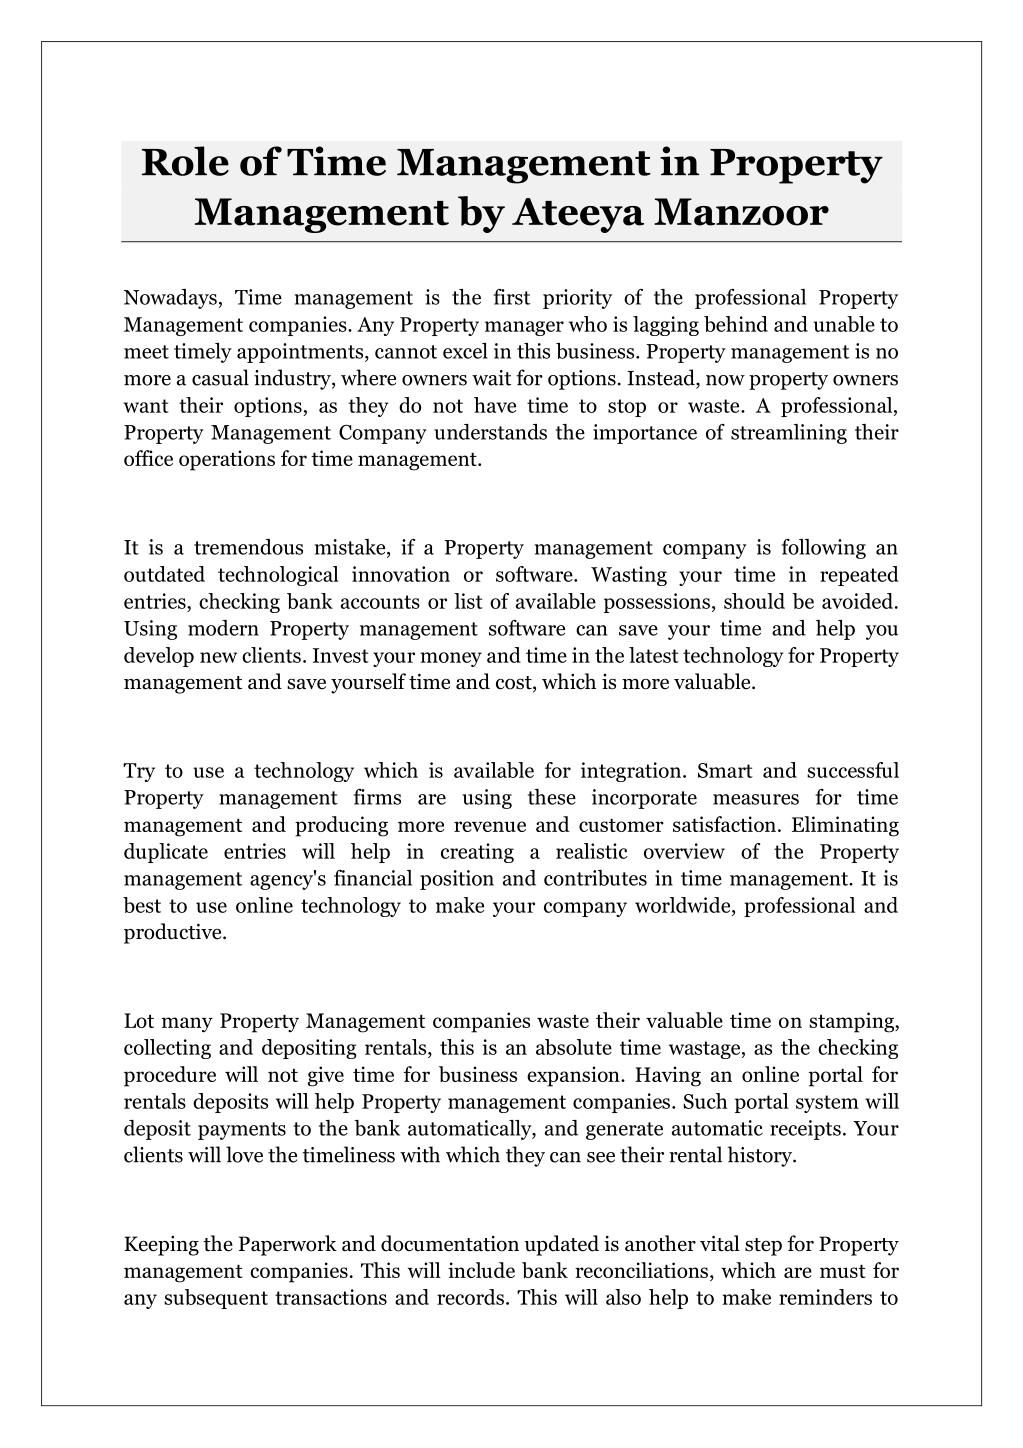 ppt - role of time management in property management by ateeya